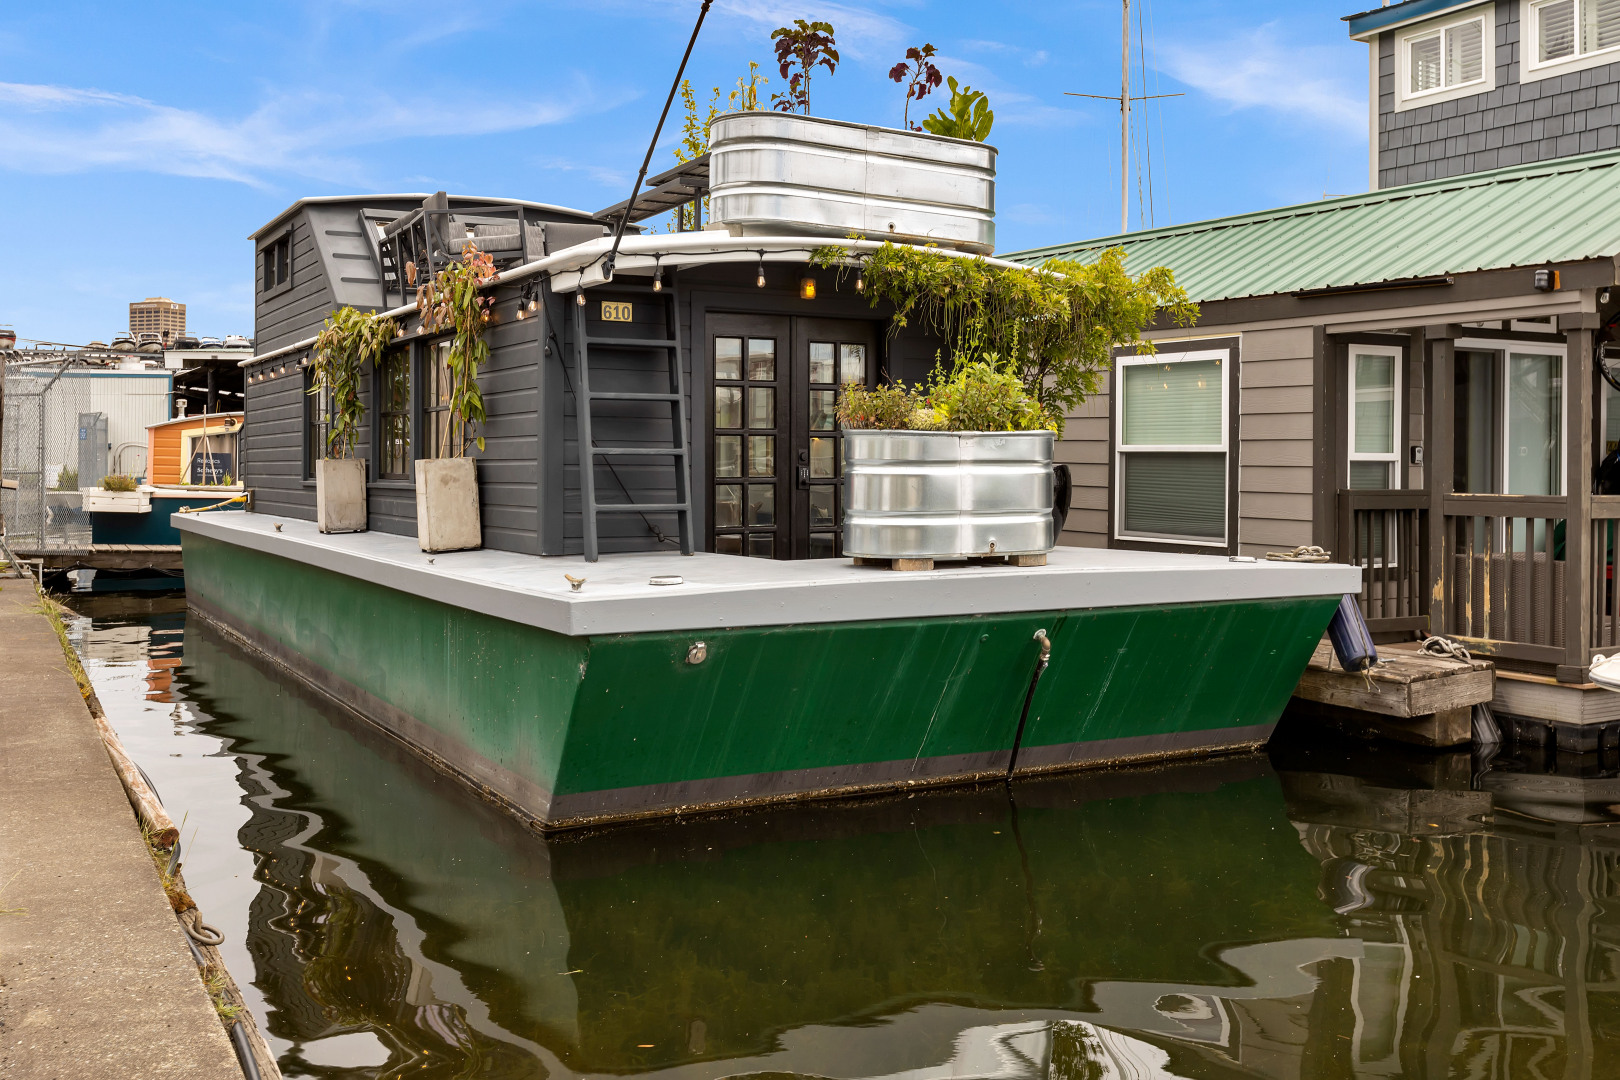 "This stunning houseboat ""Peace"" on Lake Union is{&nbsp;}New York meets Seattle! Full of natural light and gray tones, Peace features an open layout, warm wood details, a large jet tub, washer & dryer and large rooftop deck. Built in 1987, Peace comes in at 504 square feet and is listed for $395,000,{&nbsp;}<a  href=""https://1611412.rsir.homes/"" target=""_blank"">more info online</a>. (Image:{&nbsp;}<a  href=""https://www.instagram.com/apnwphotographer/"" target=""_blank"">Nicolas Gerlach / @apnwphotographer</a>)"